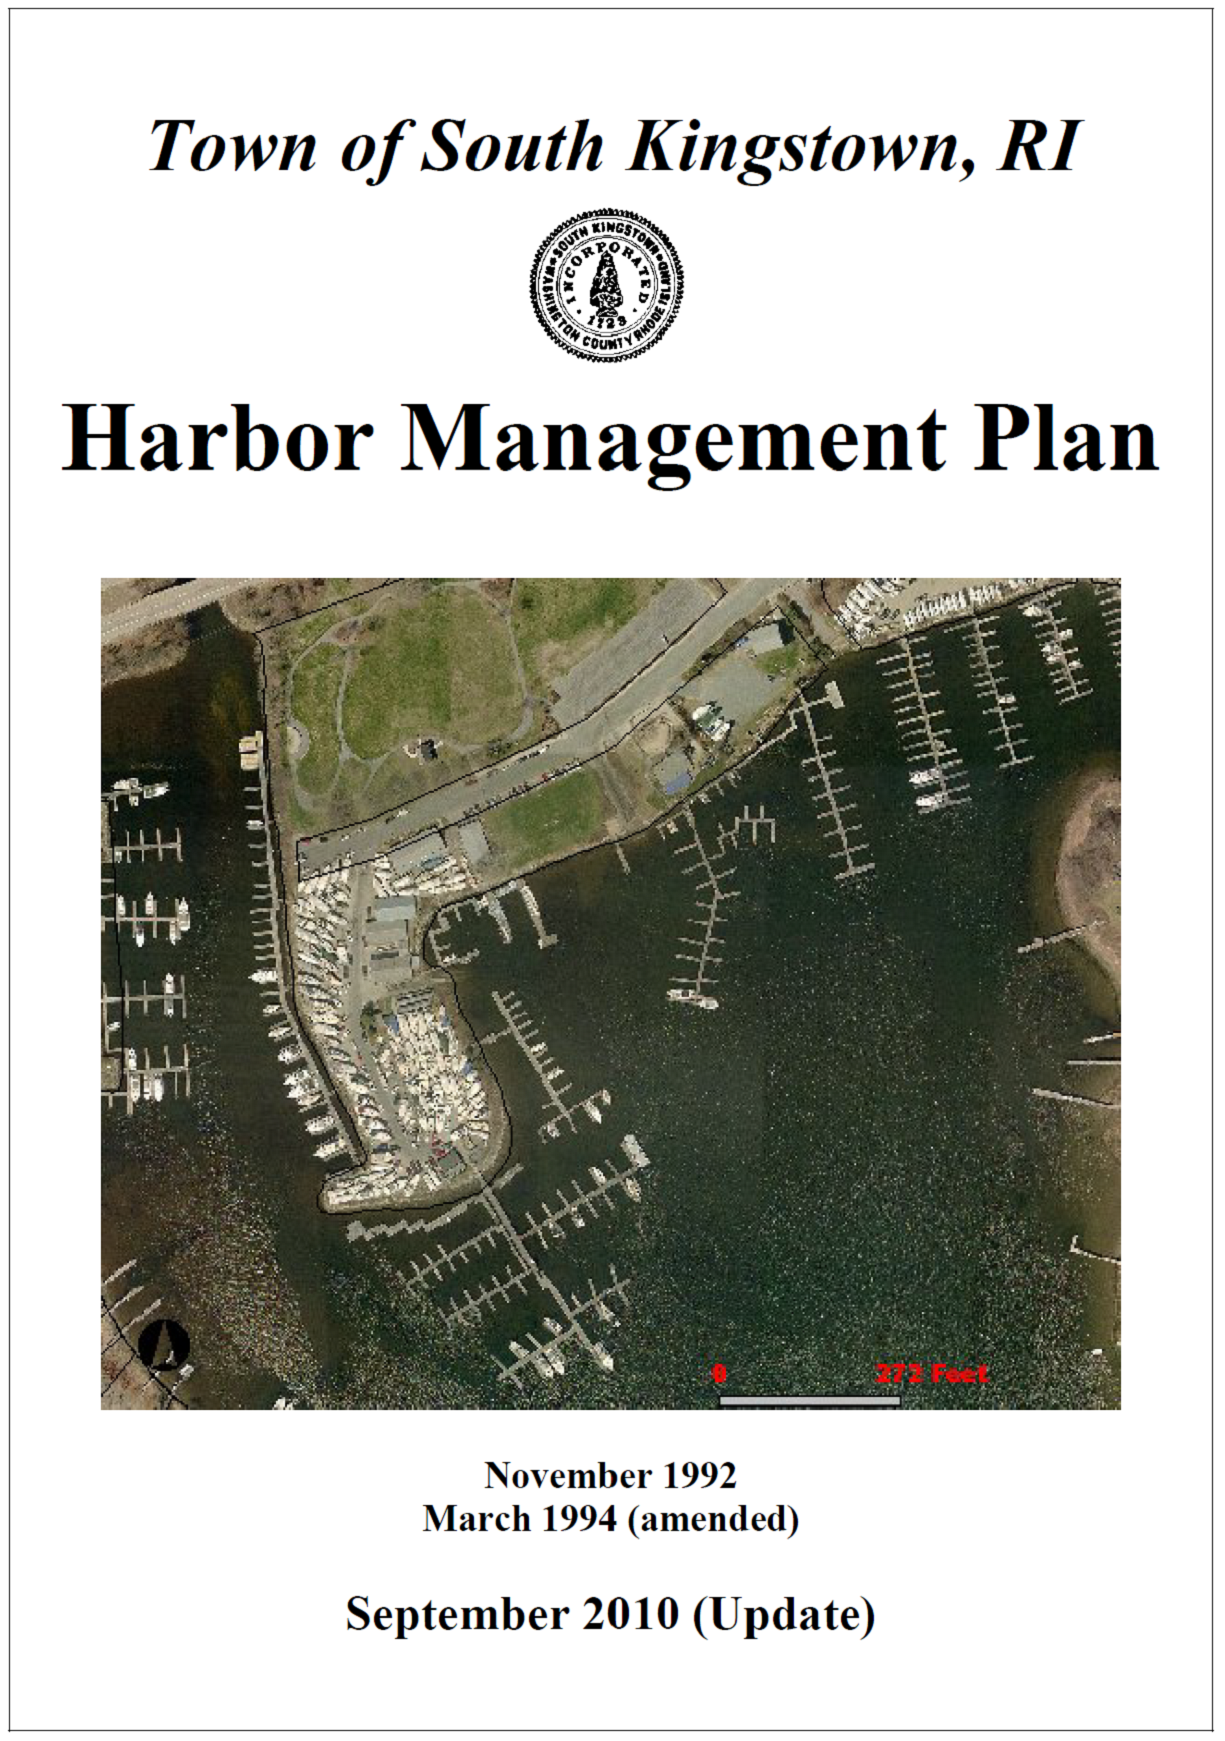 The  Harbor Management Plan  oversees the safe and healthy operation of the Town's harbors.